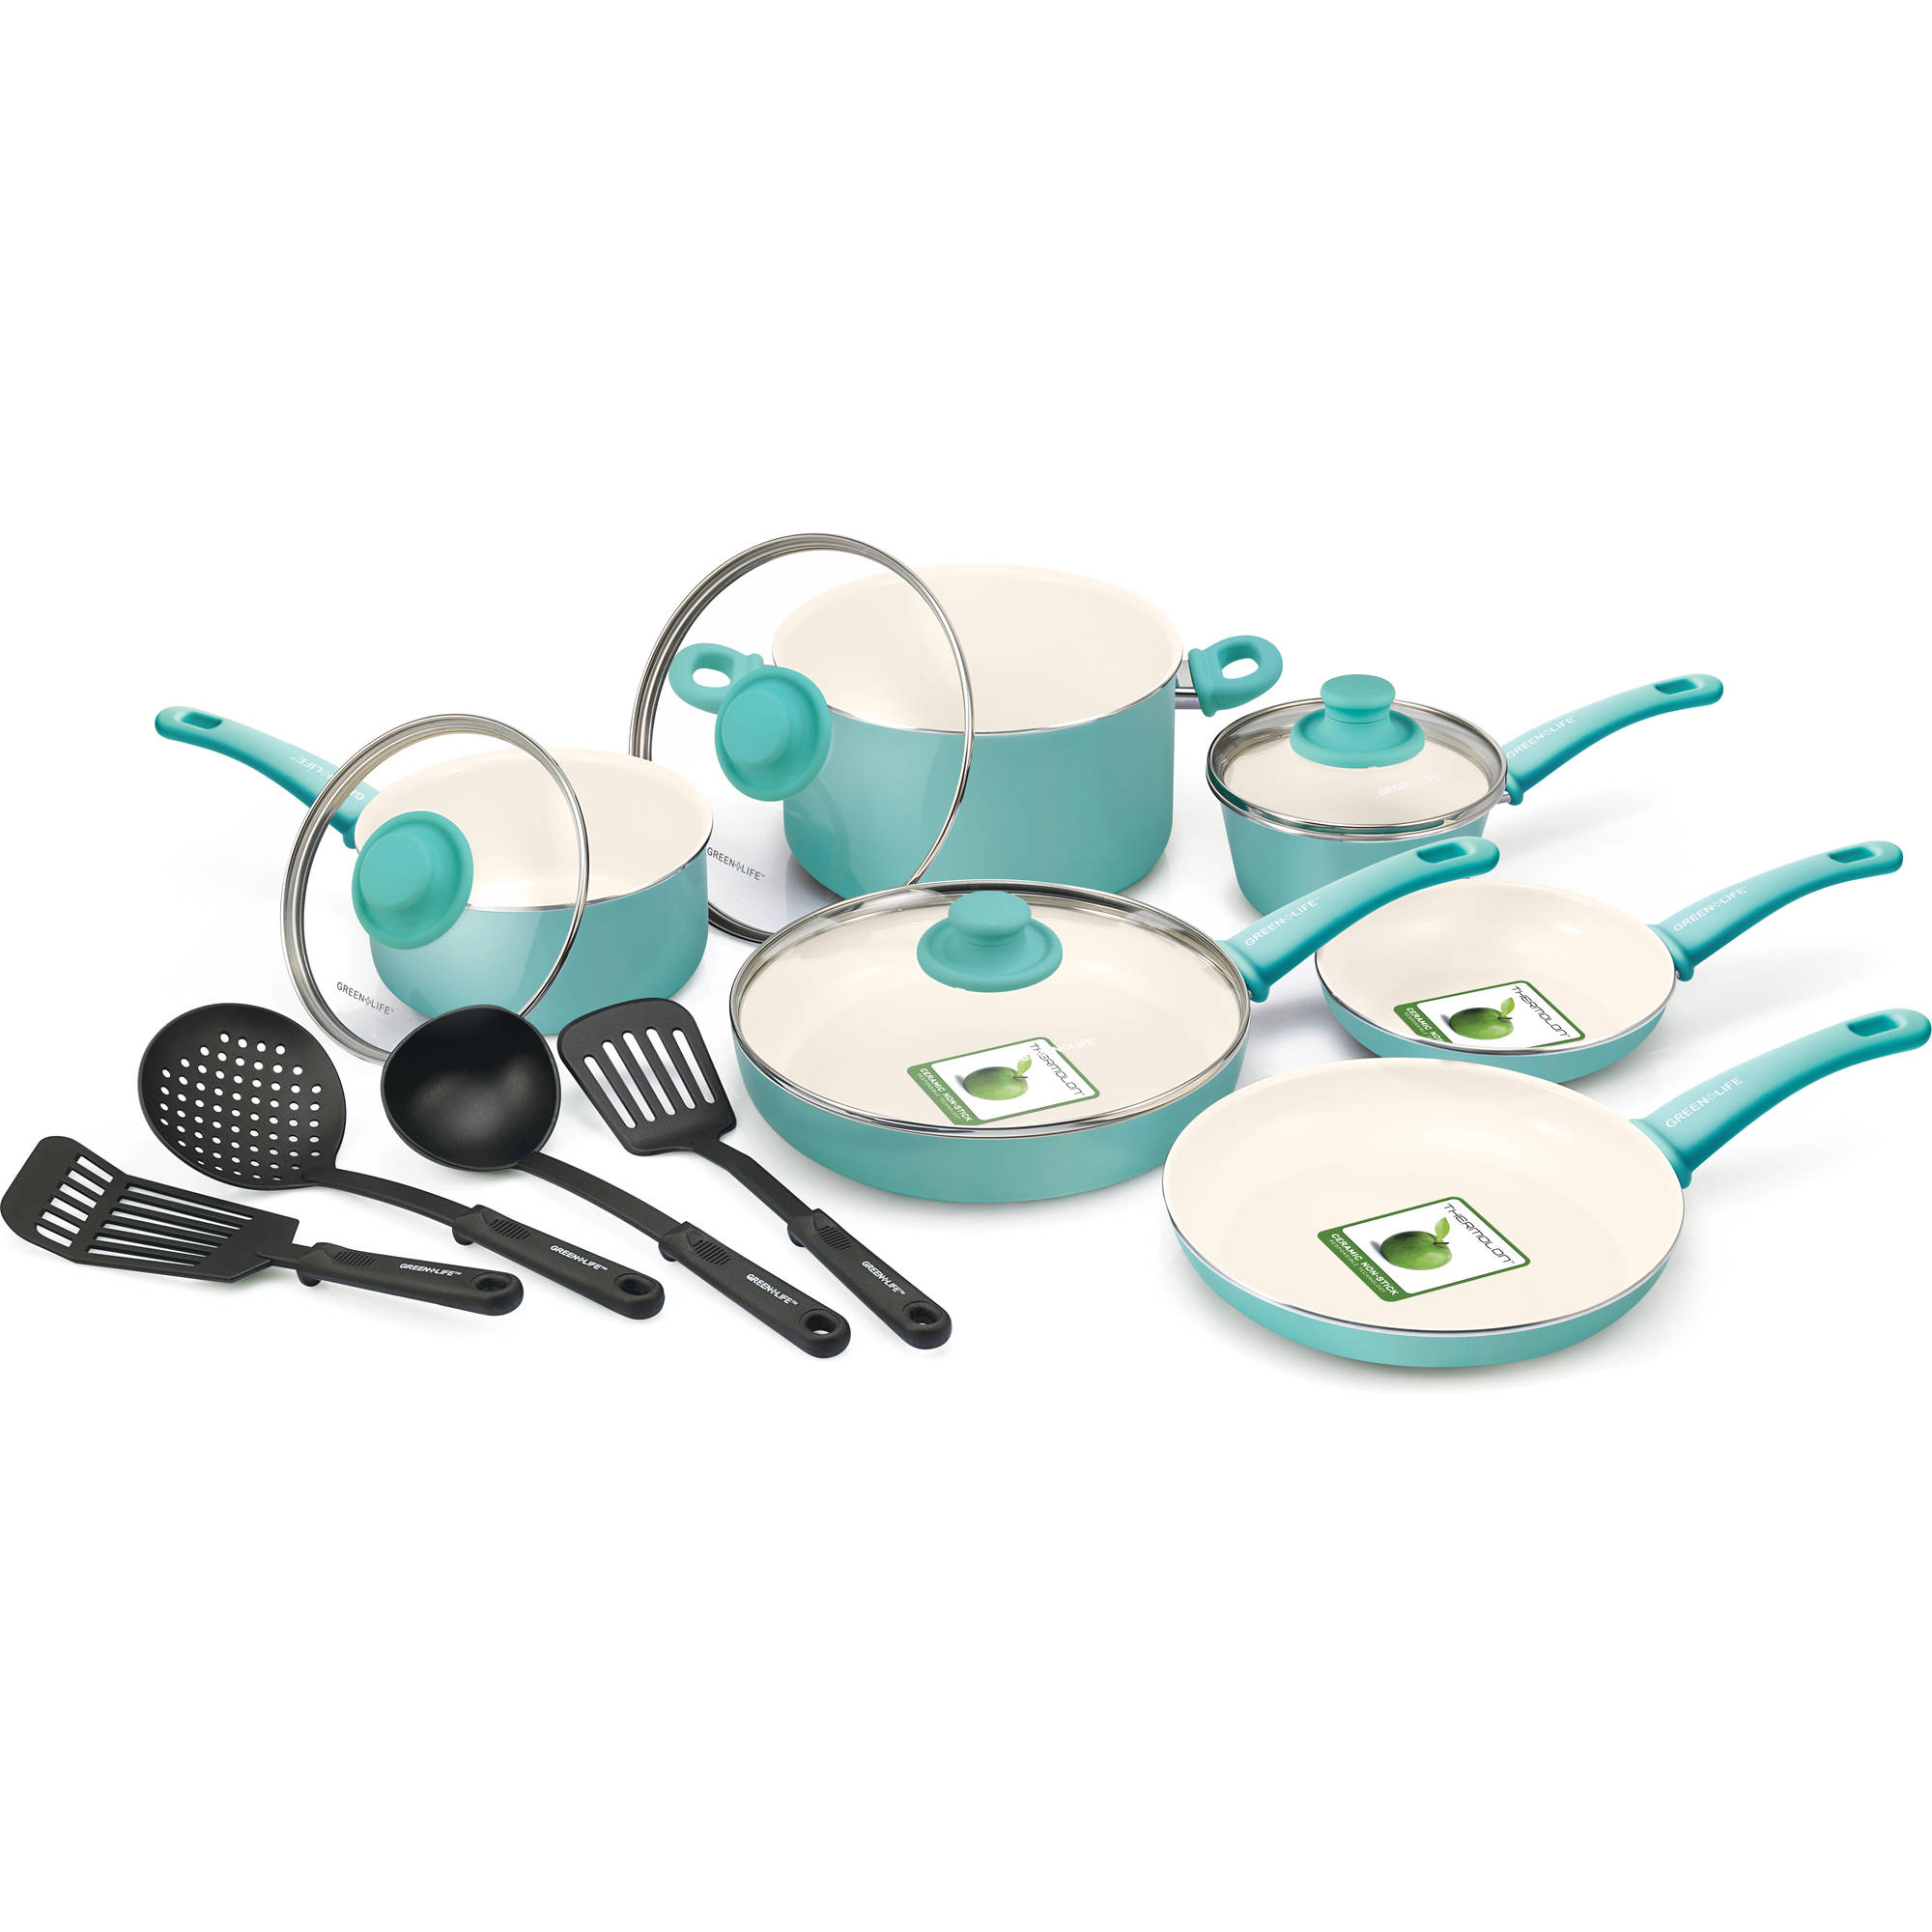 GreenLife 14pc Soft Grip Ceramic Non-Stick Cookware Set Turquoise